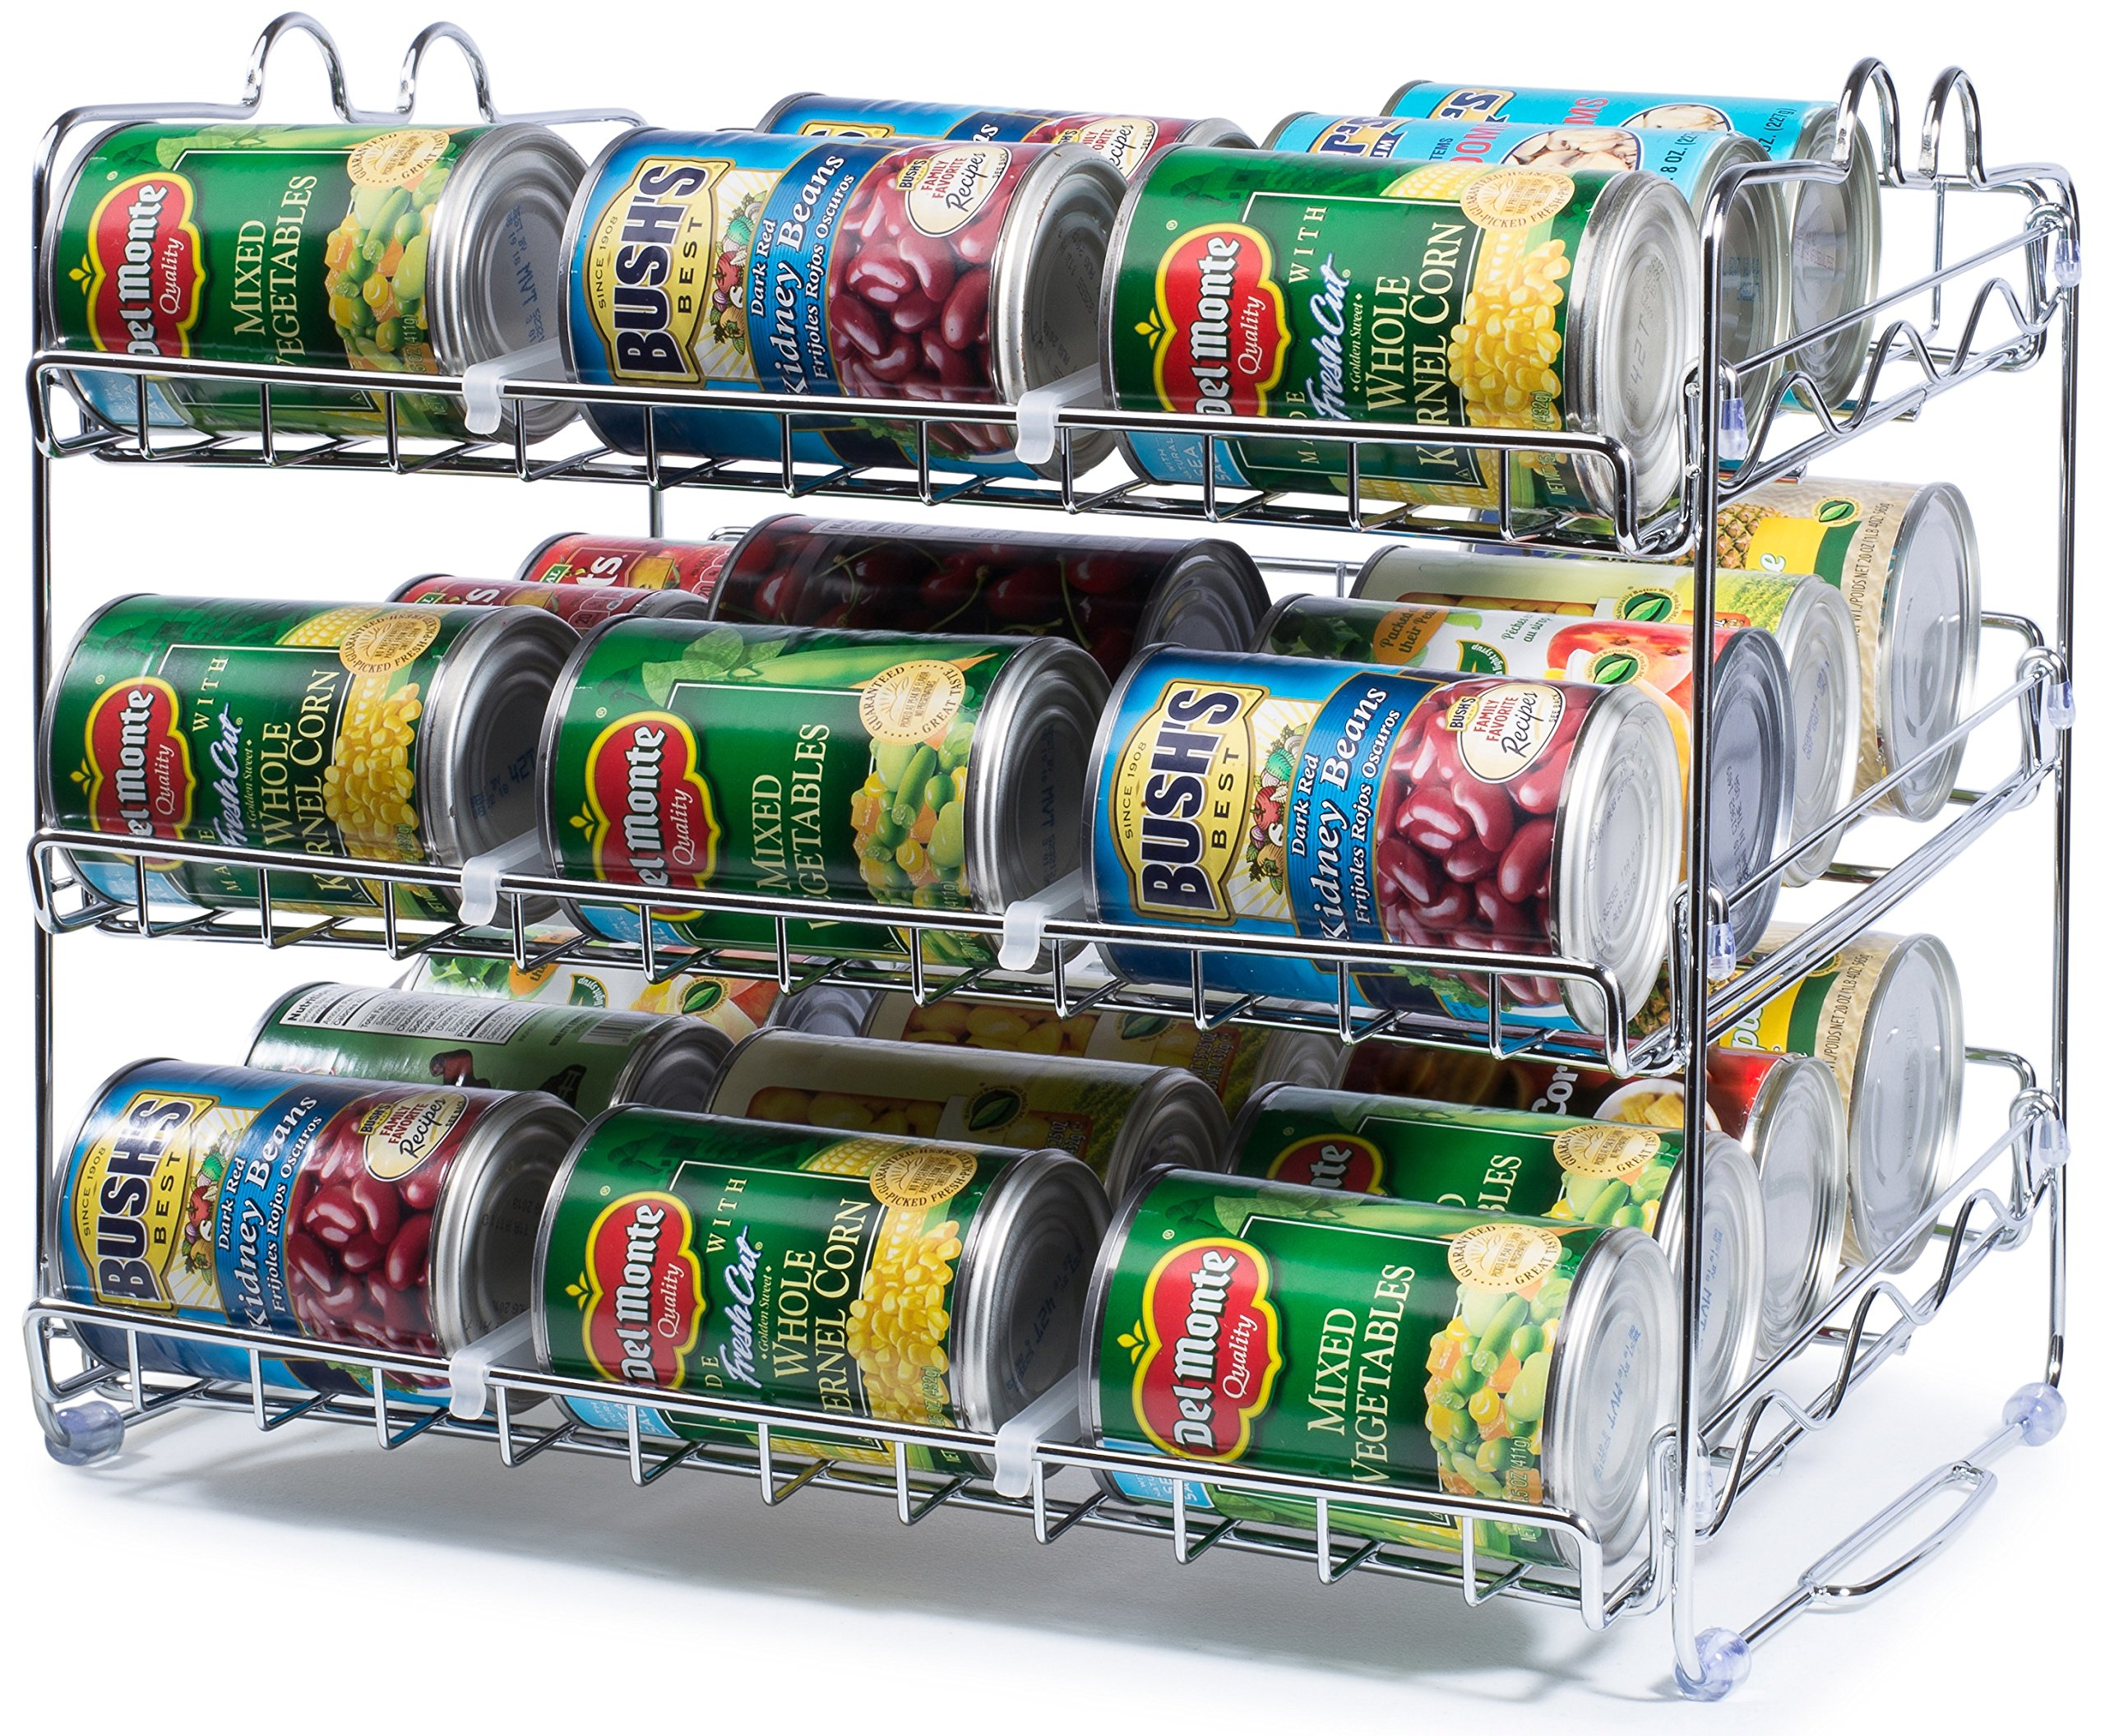 Stackable Can Rack Organizer, Storage for 36 cans - Great for the Pantry Shelf, Kitchen Cabinet or Counter-top. Stack Another Set on Top to Double Your Storage Capacity. (Chrome Finish) by Che'mar